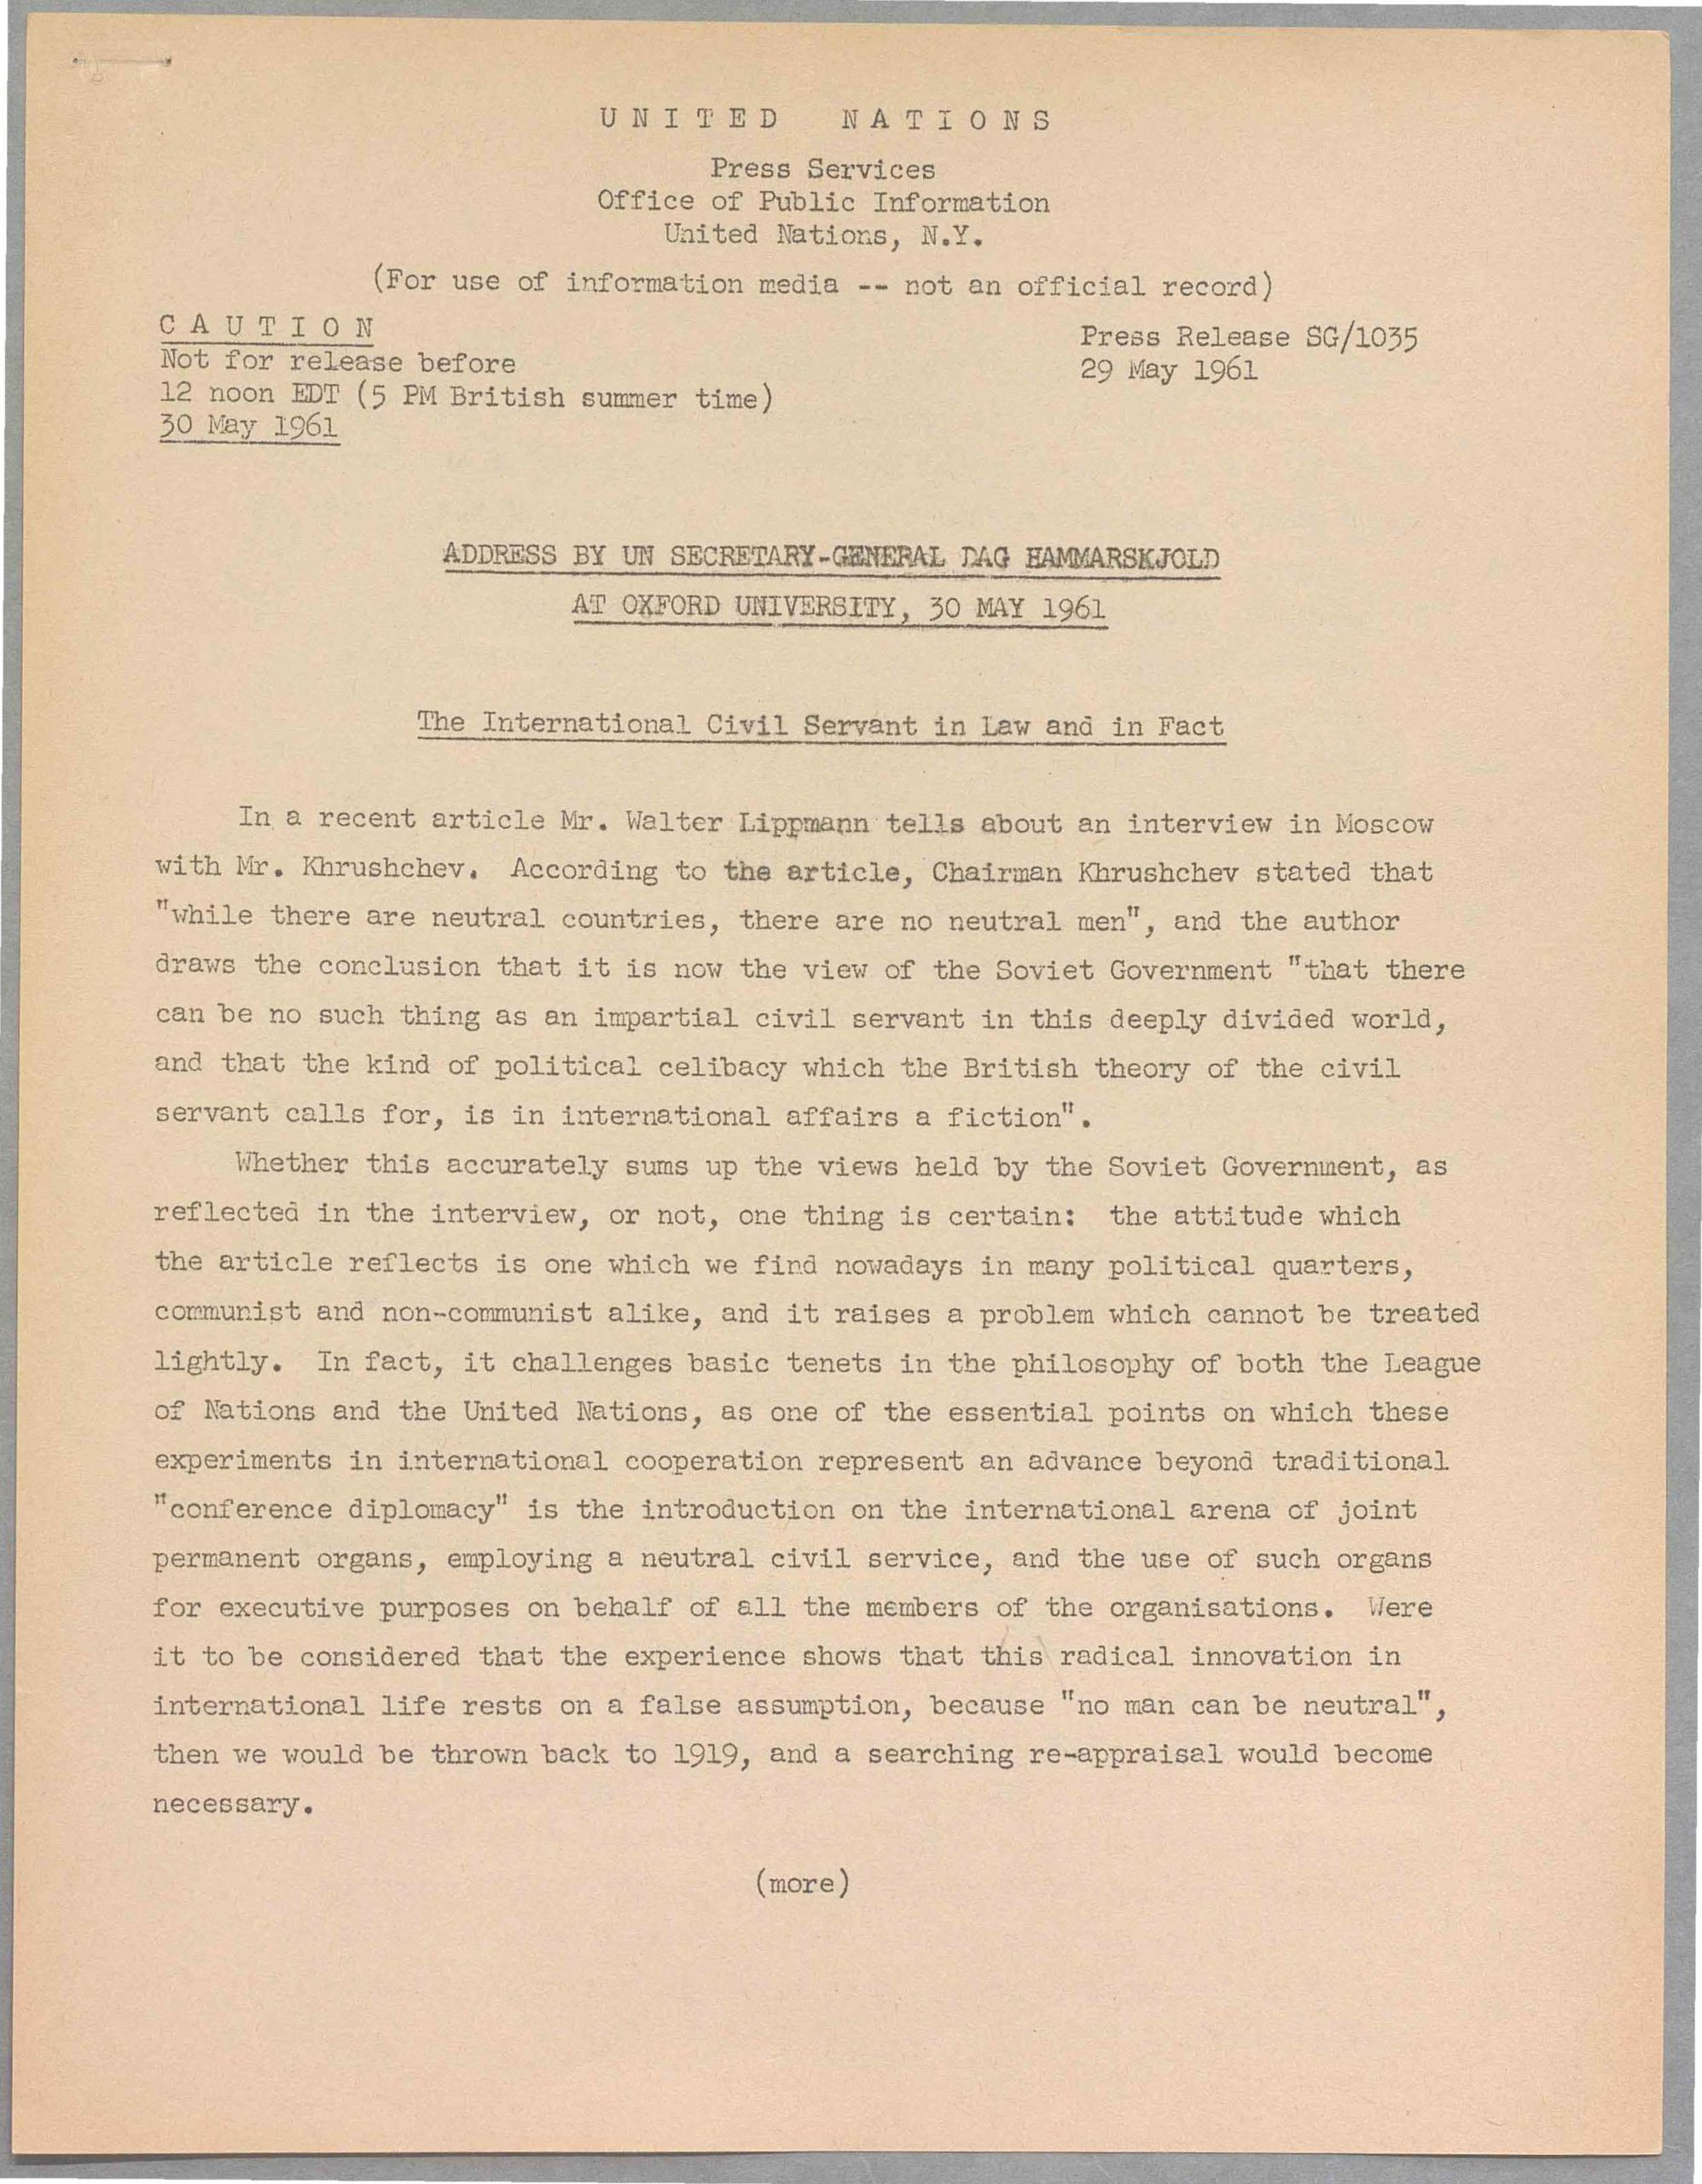 A reproduction of the first page of a UN press release from 29 May 1961